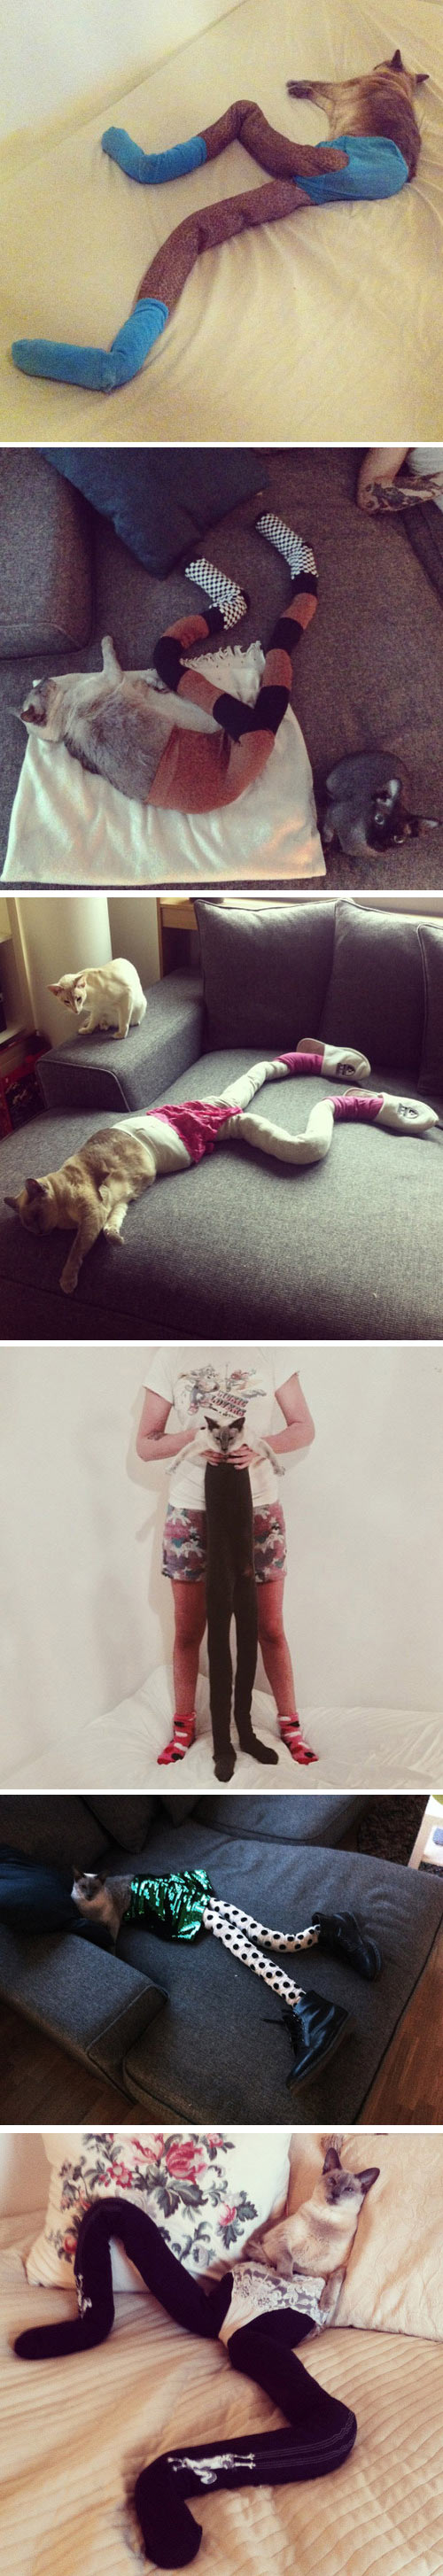 funny-cats-wearing-long-tights-shoes